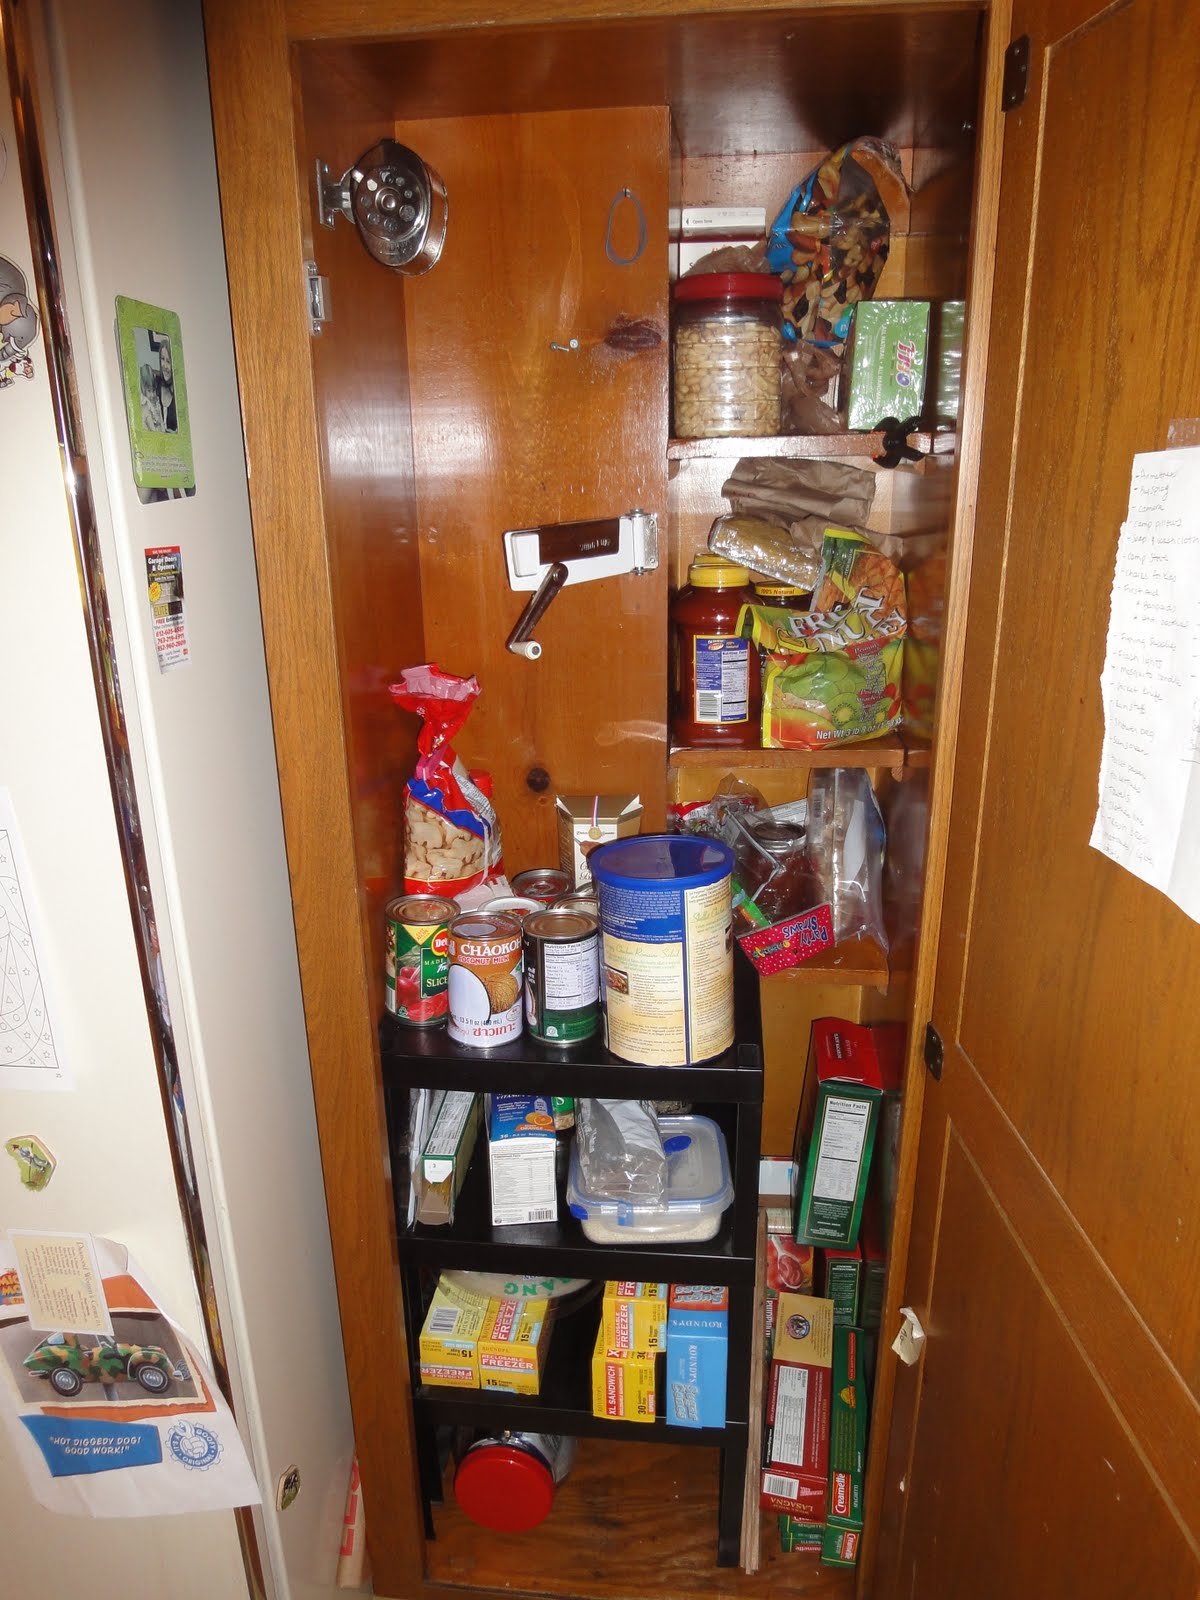 Here you can see the wooden box in the back of the pantry. We have a